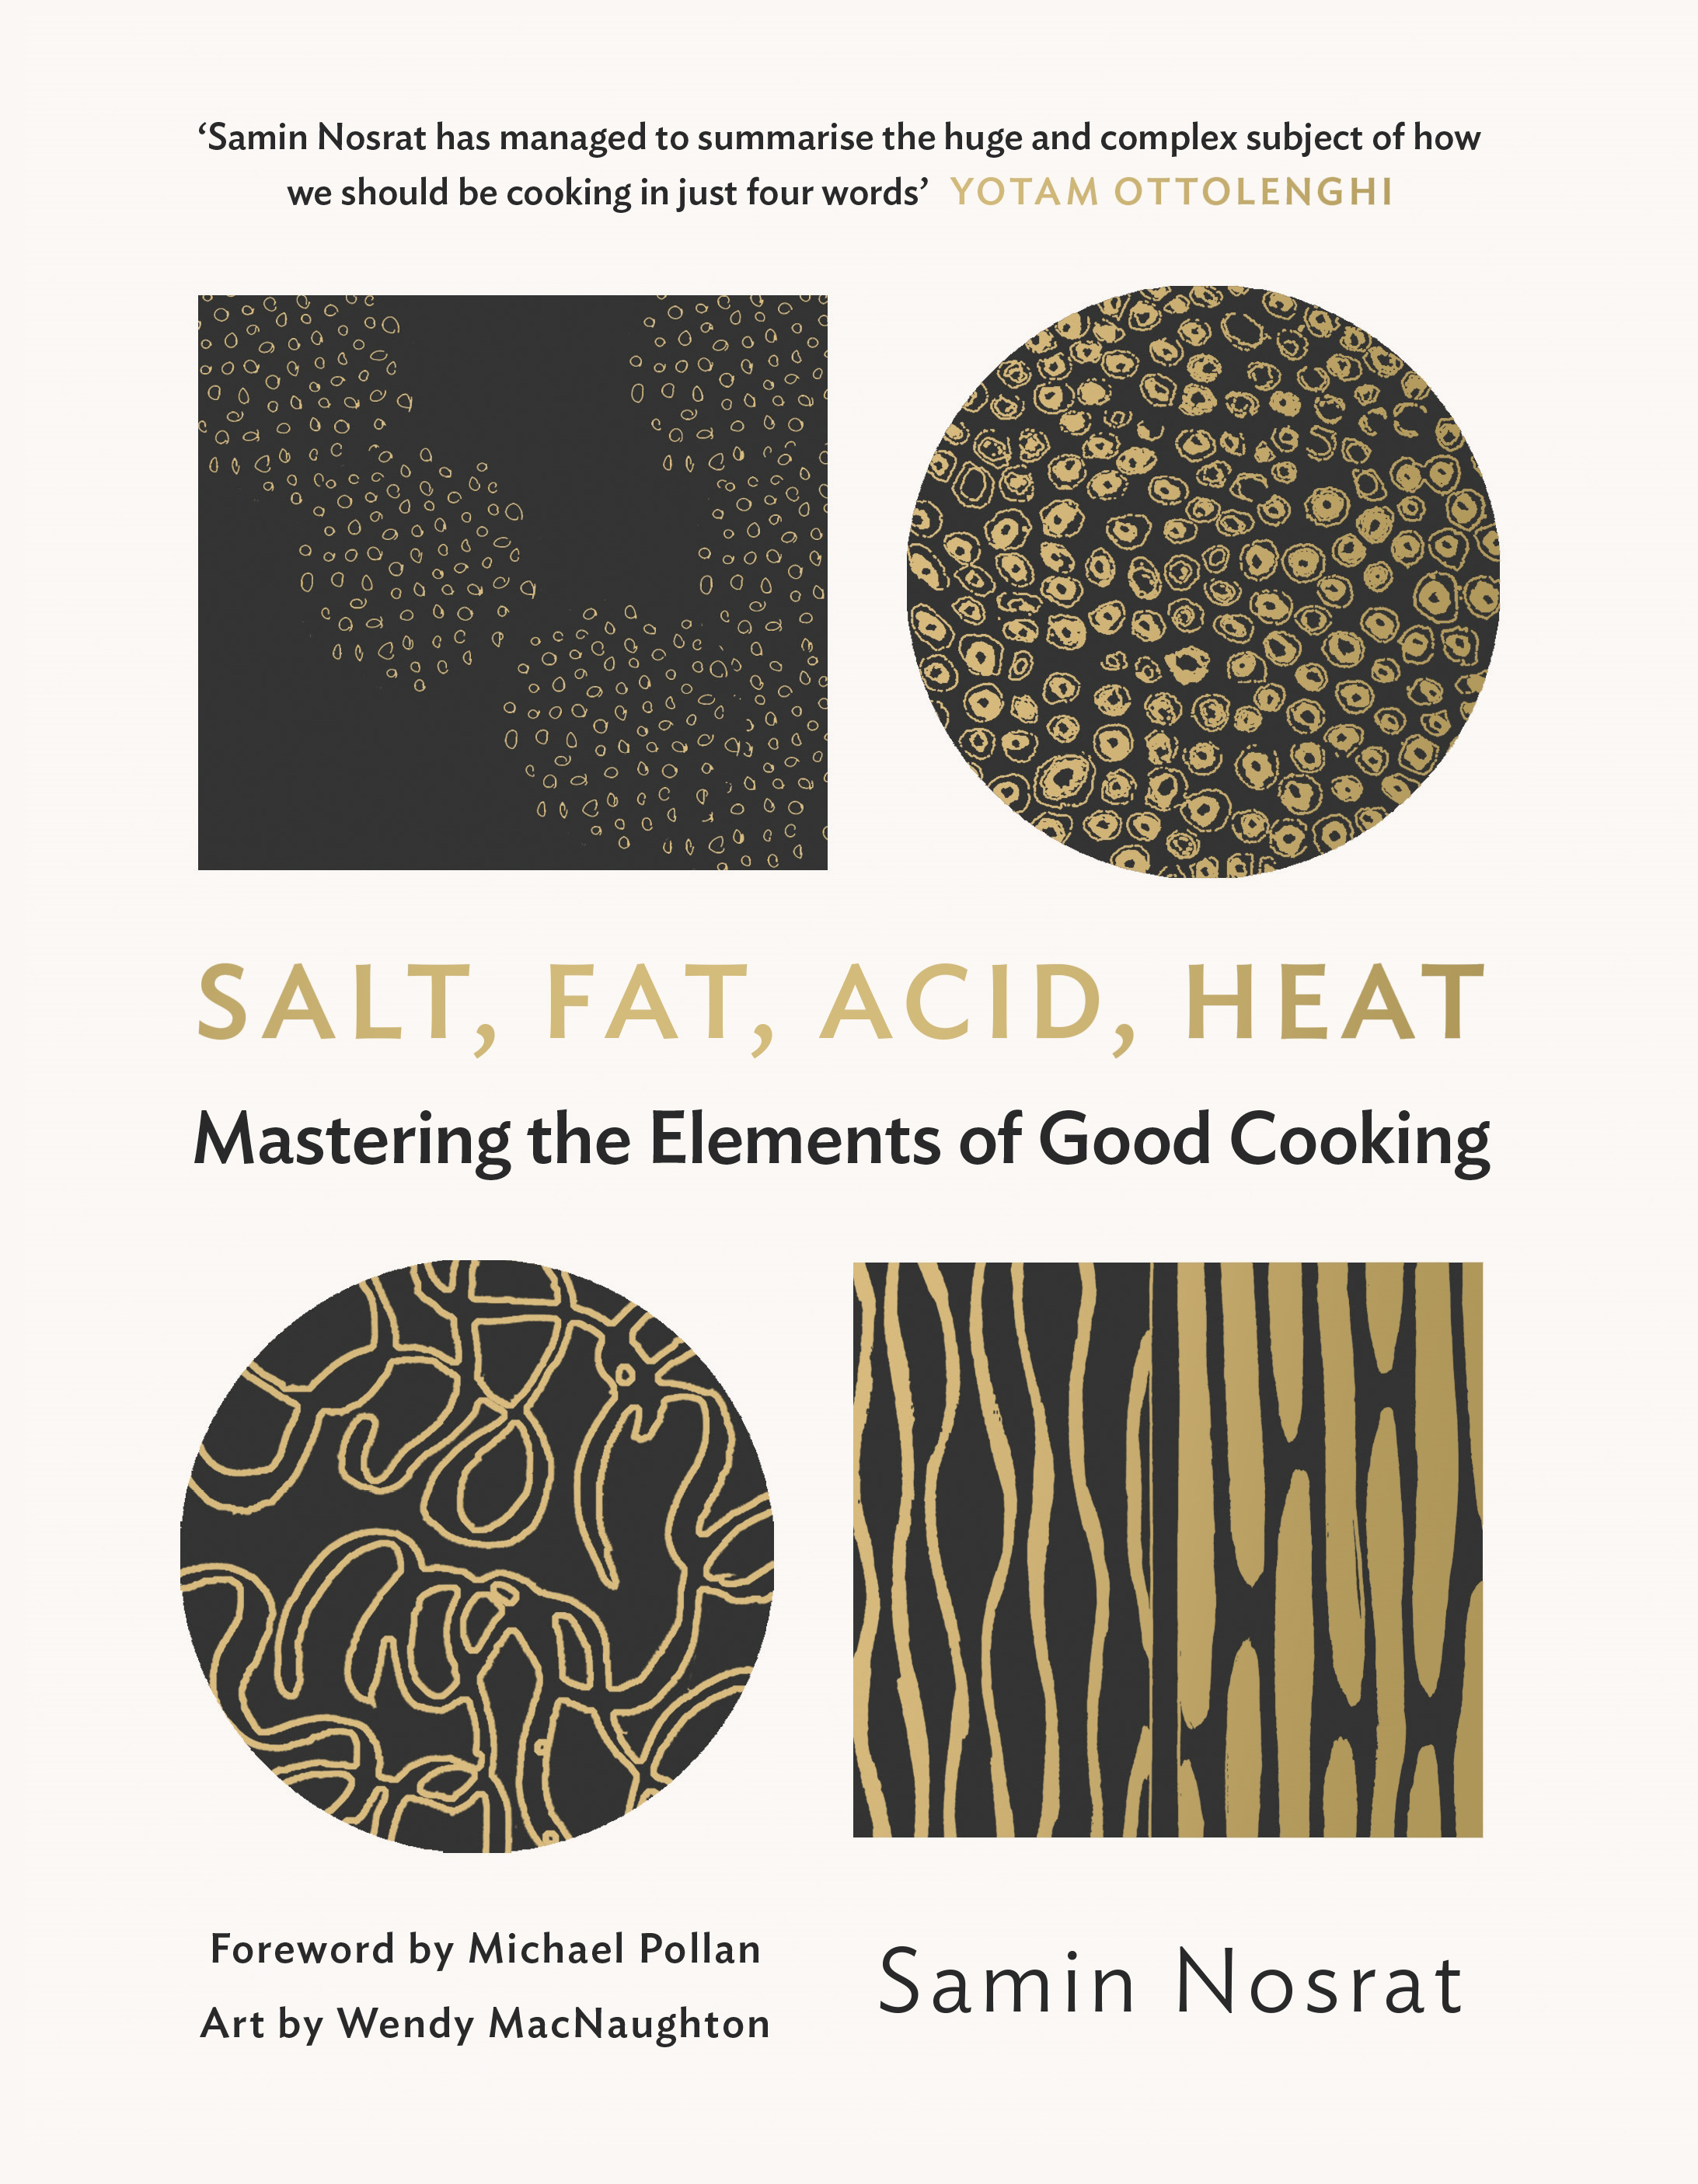 Salt, Fat, Acid, Heat: The Four Elements of Good Cooking by Samin Nosrat, ISBN: 9781782112303